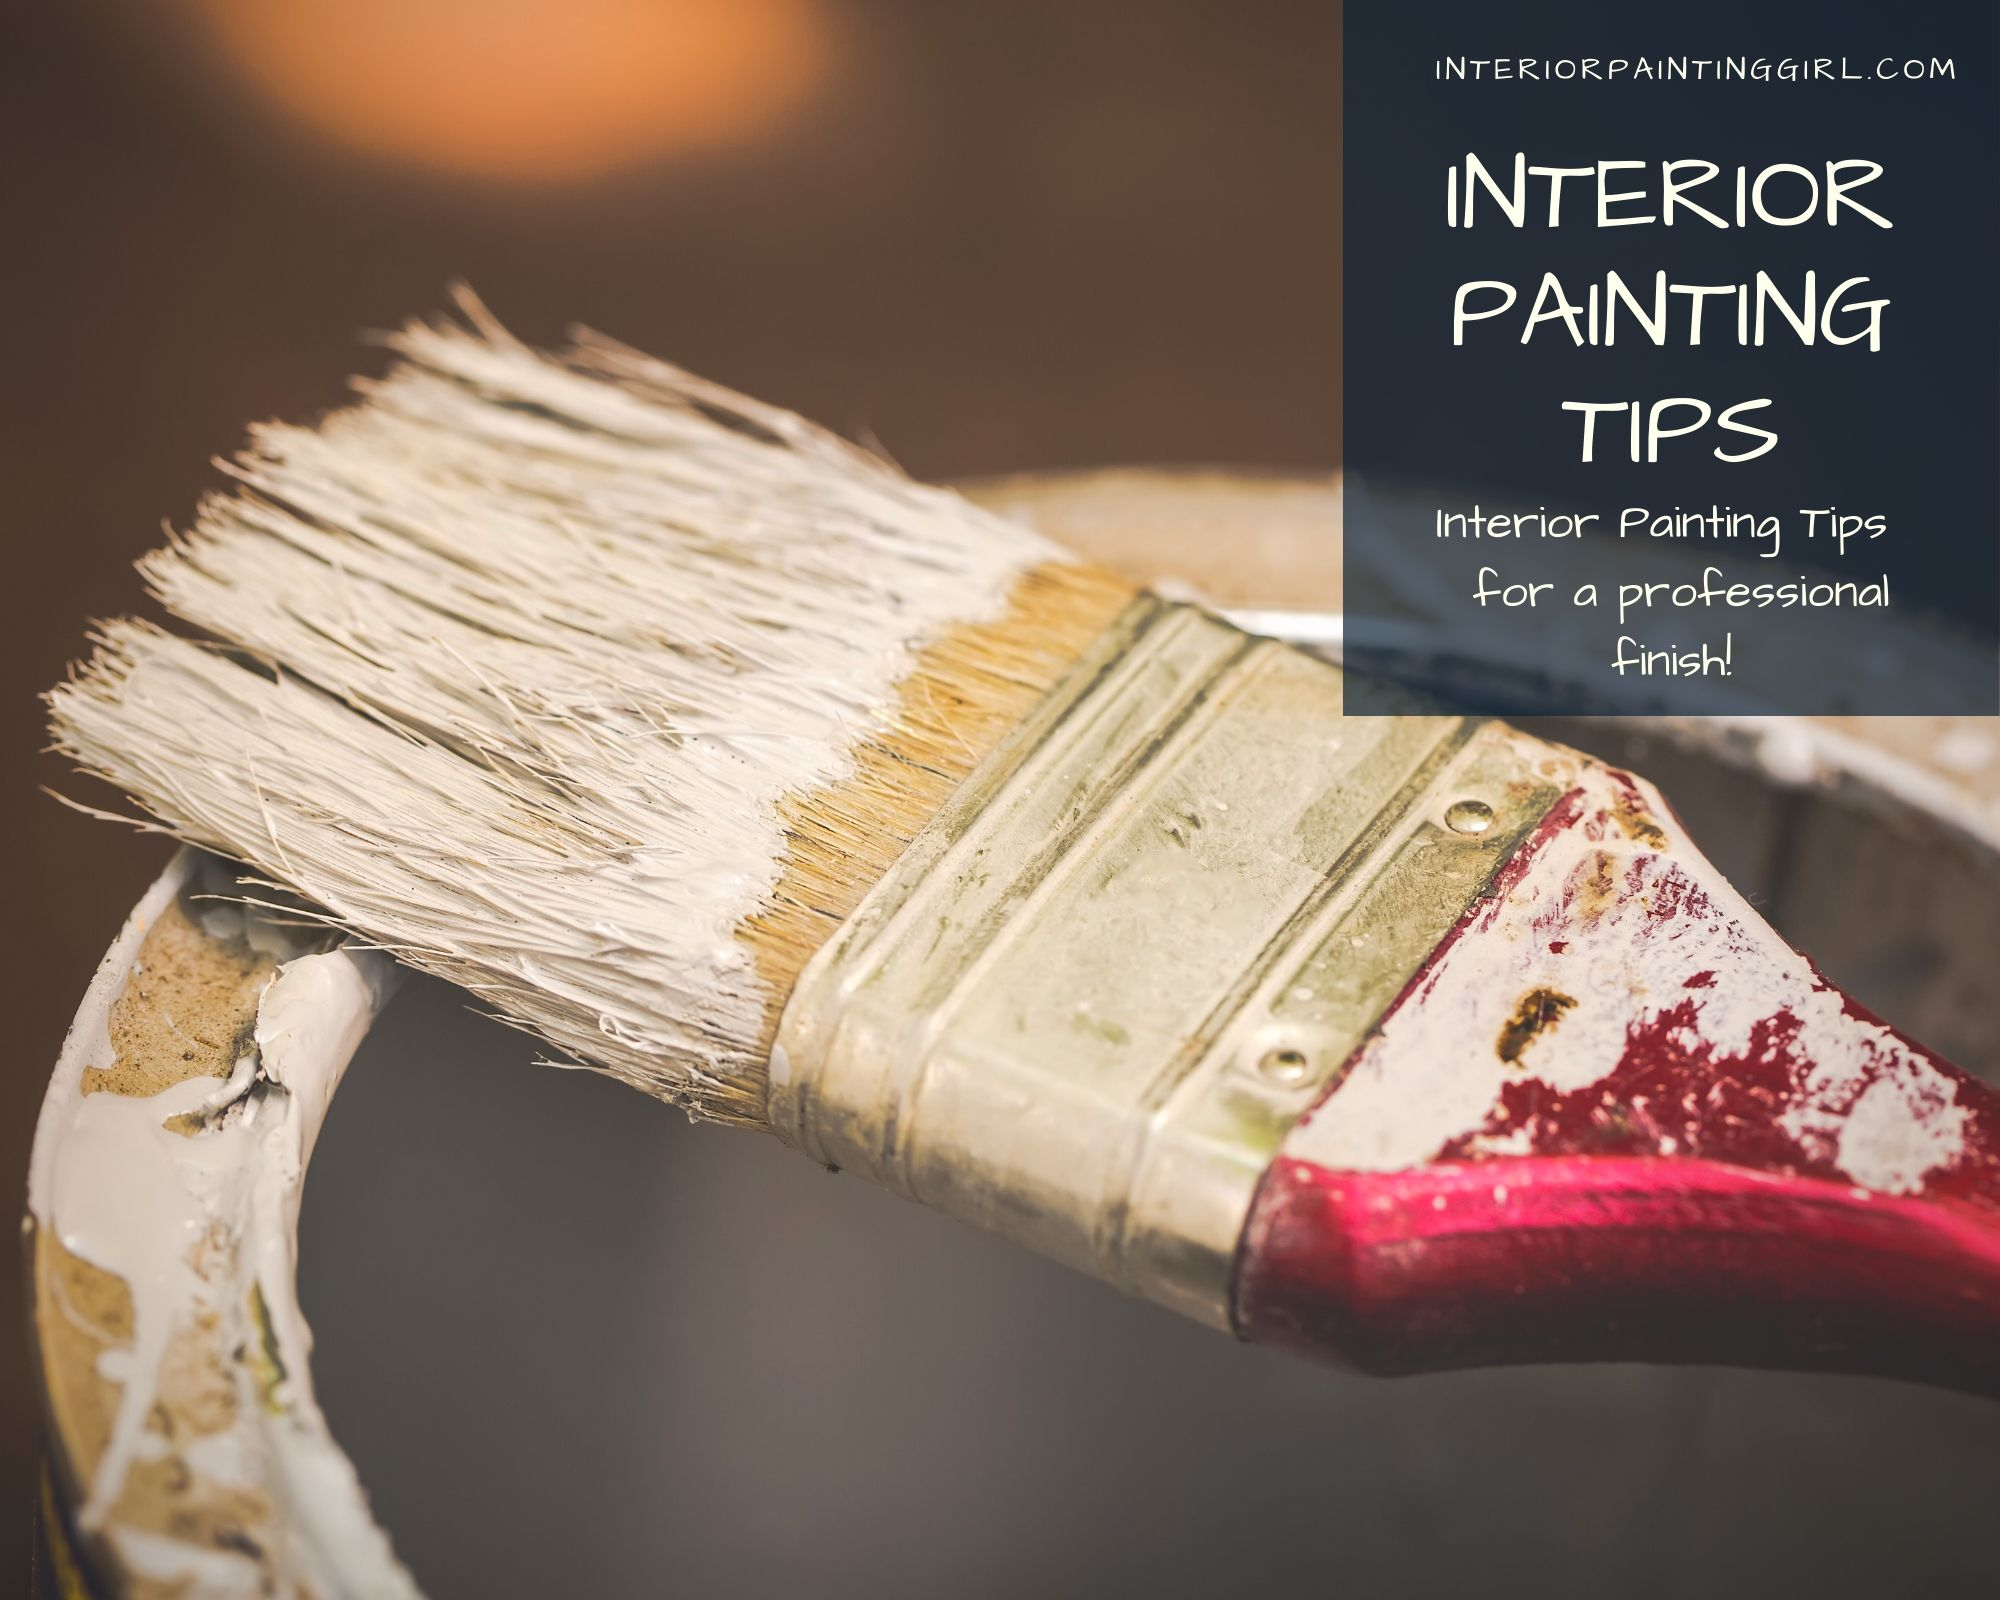 Learn Professional Interior Painting Tips from InteriorPaintingGirl.com